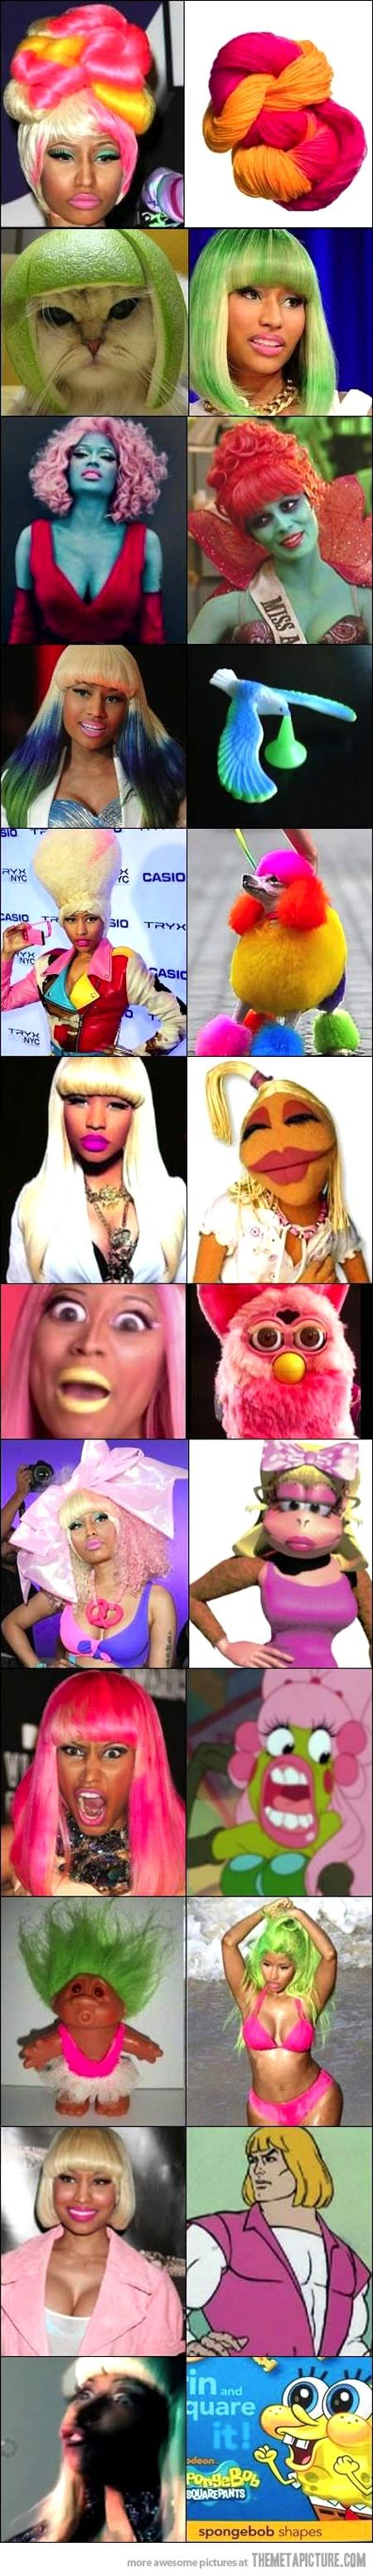 Things that look like Nicki Minaj…  this is funny but i have no idea who this woman is. i feel bad for her....but it seems she brings this on herself.....?